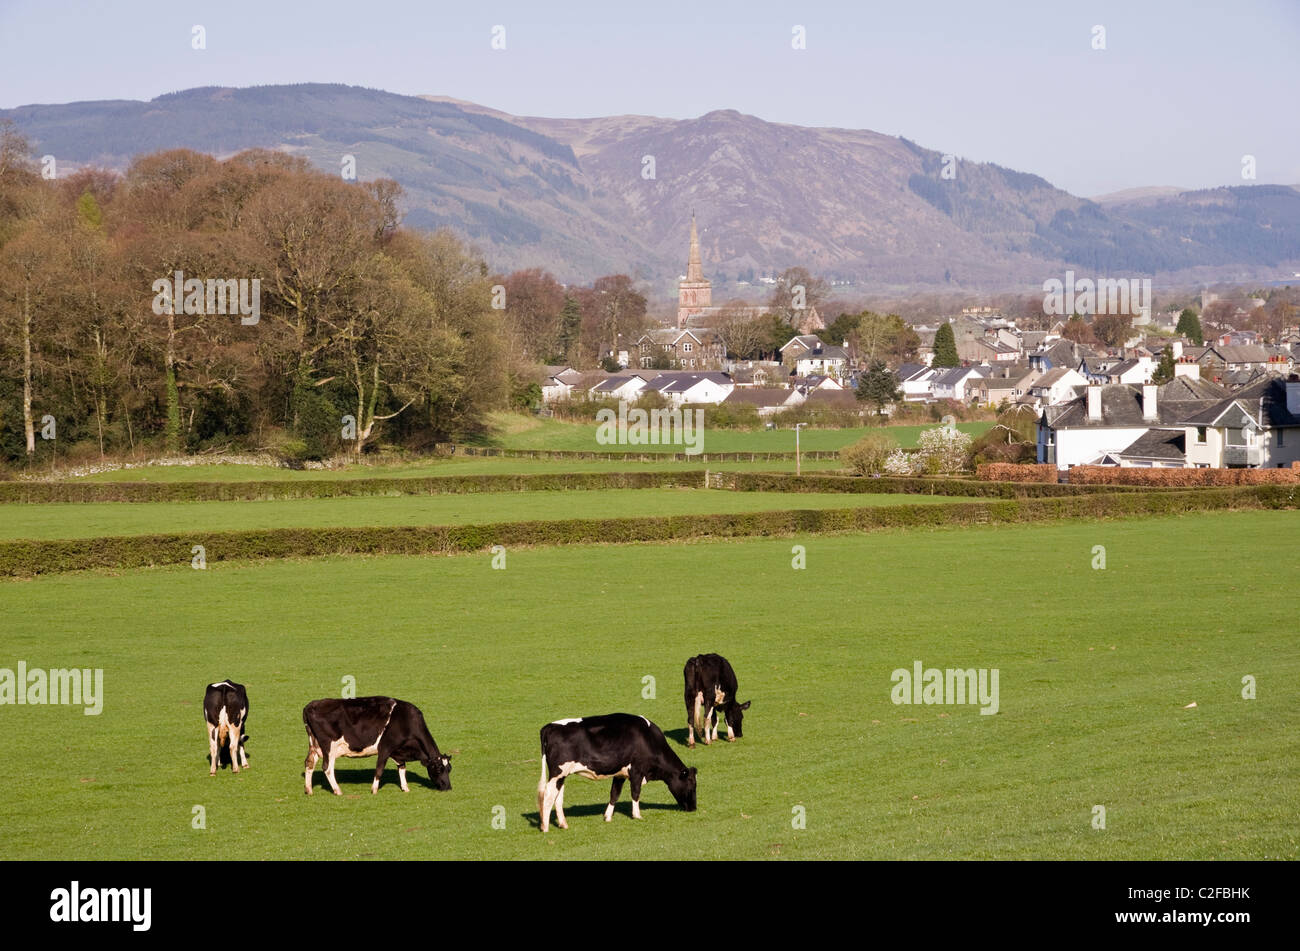 Pastoral country scene with Holstein Friesian herd of dairy cows cattle grazing in a field on outskirts of town. - Stock Image